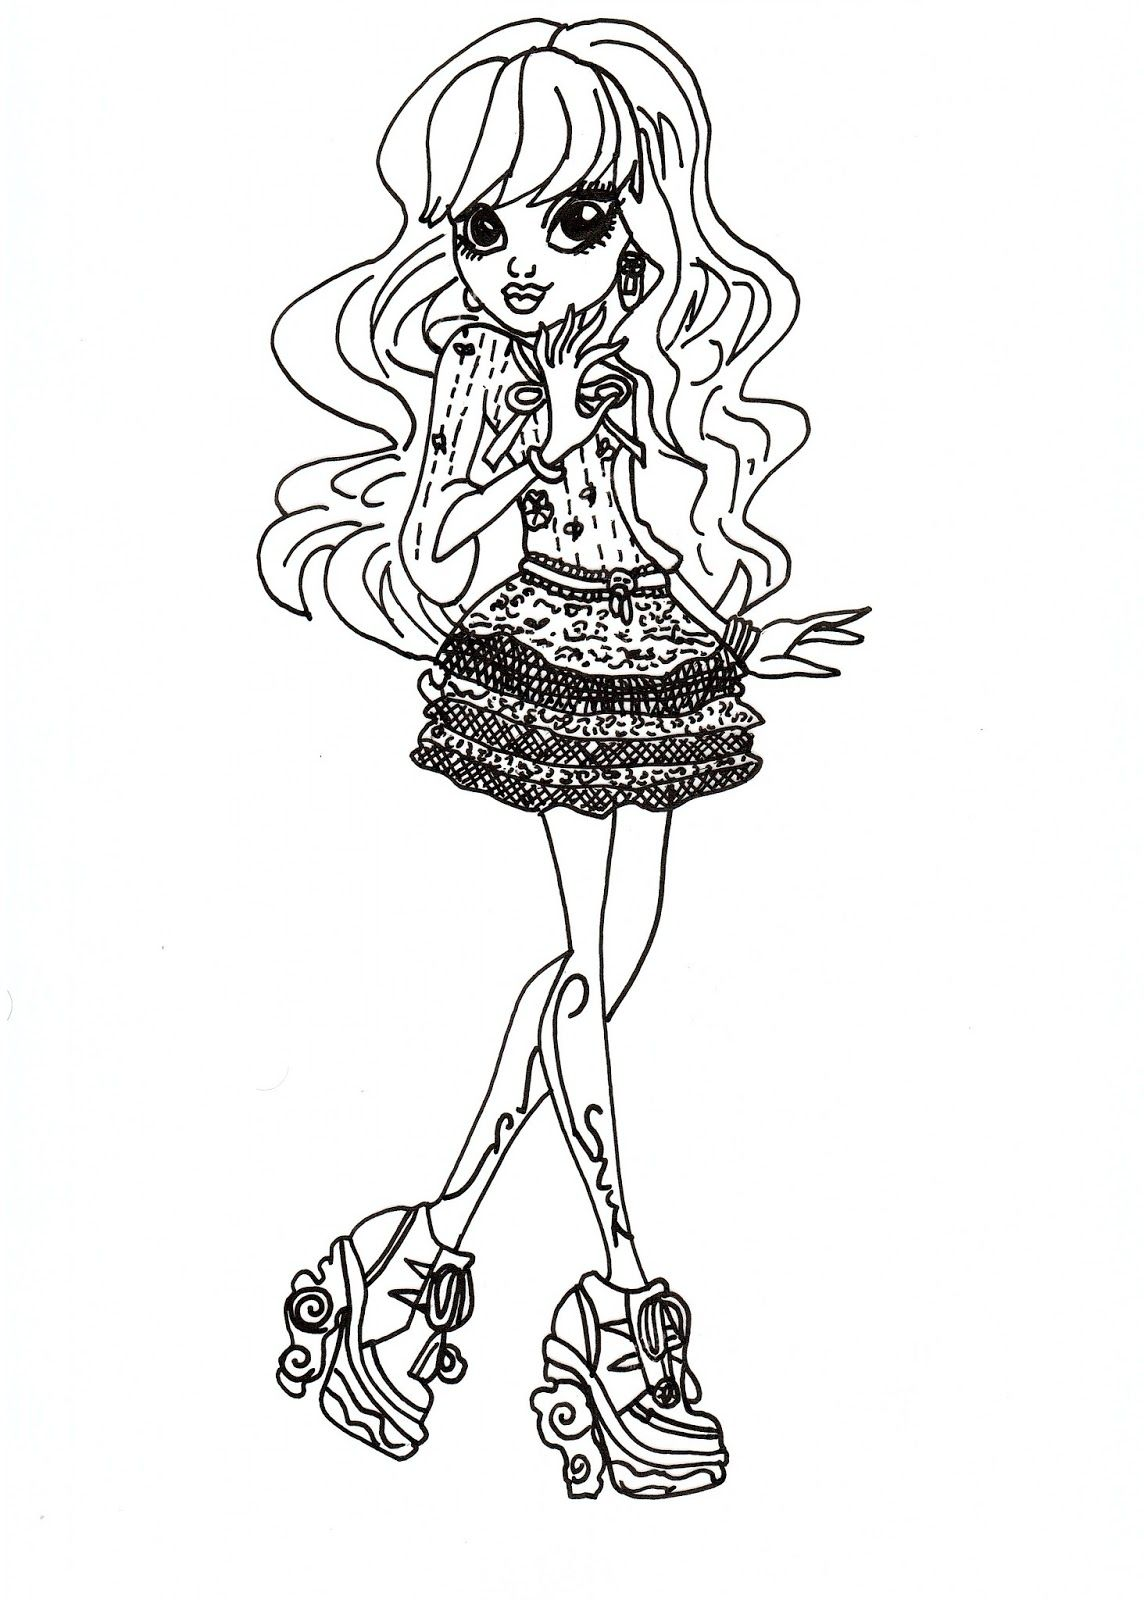 Monster High Ausmalbilder Draculaura Und Clawd : Pin By Kitten Weatherly On 2 Color Monster High Pinterest